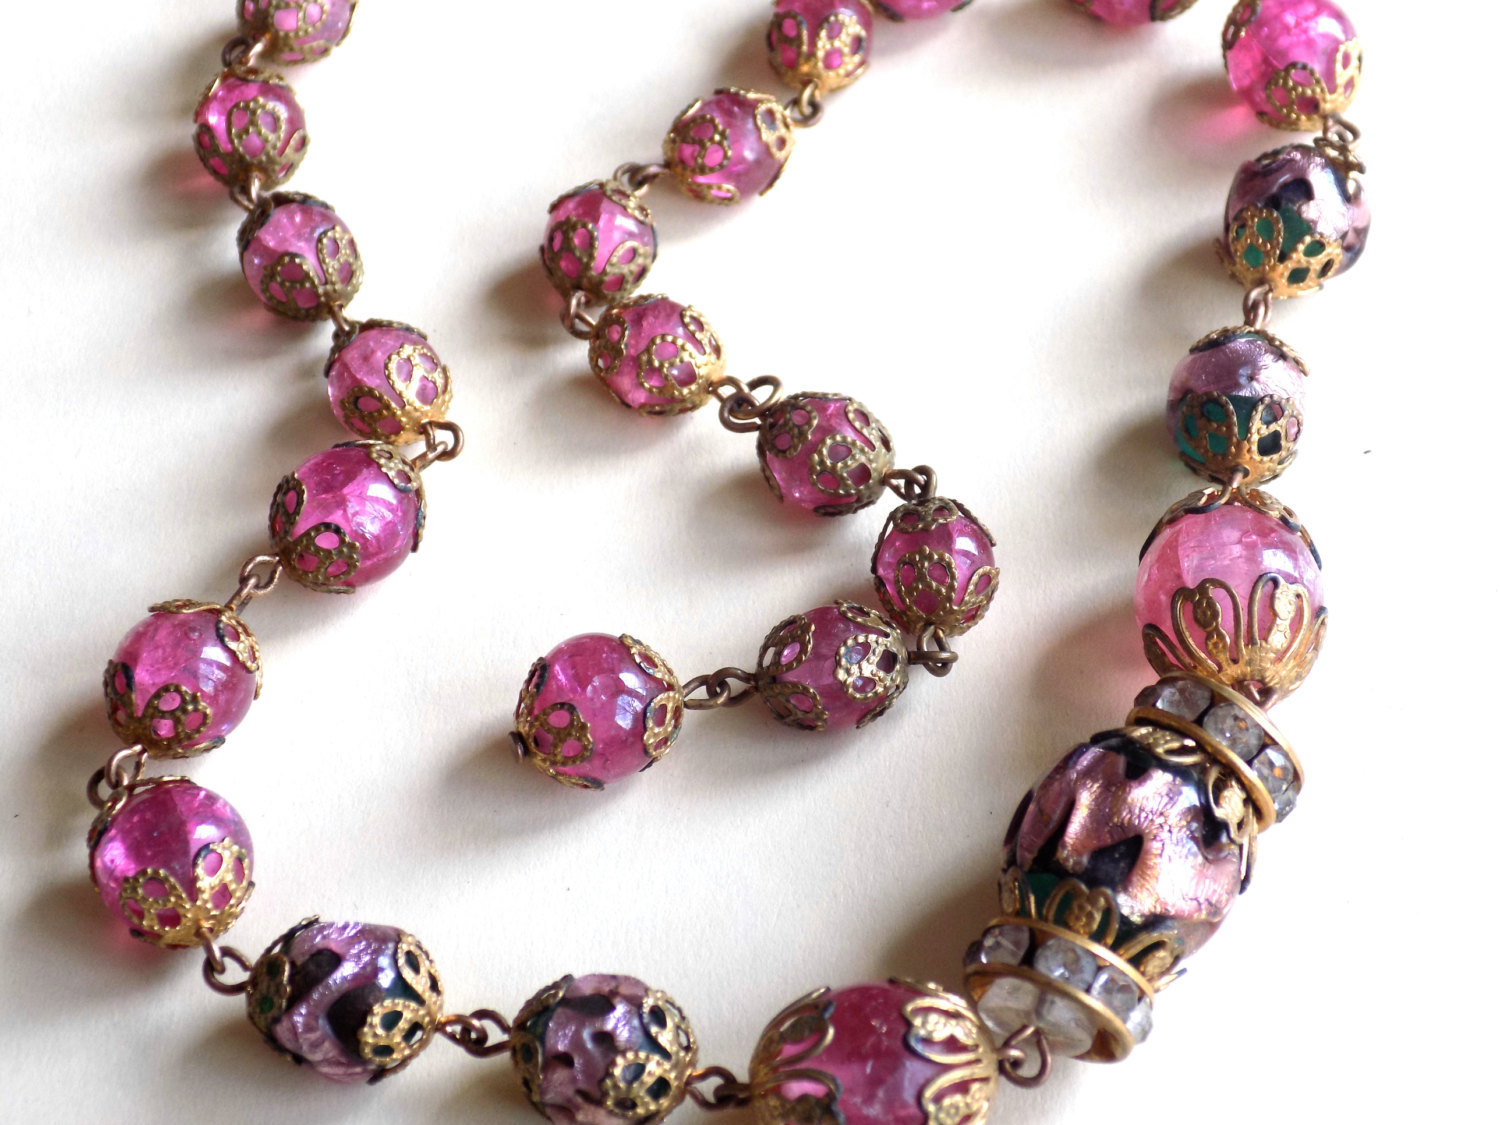 Vintage Glass Bead Choker Necklace Filigree Caps Pink Crackle Glass and Foil Inf image 2